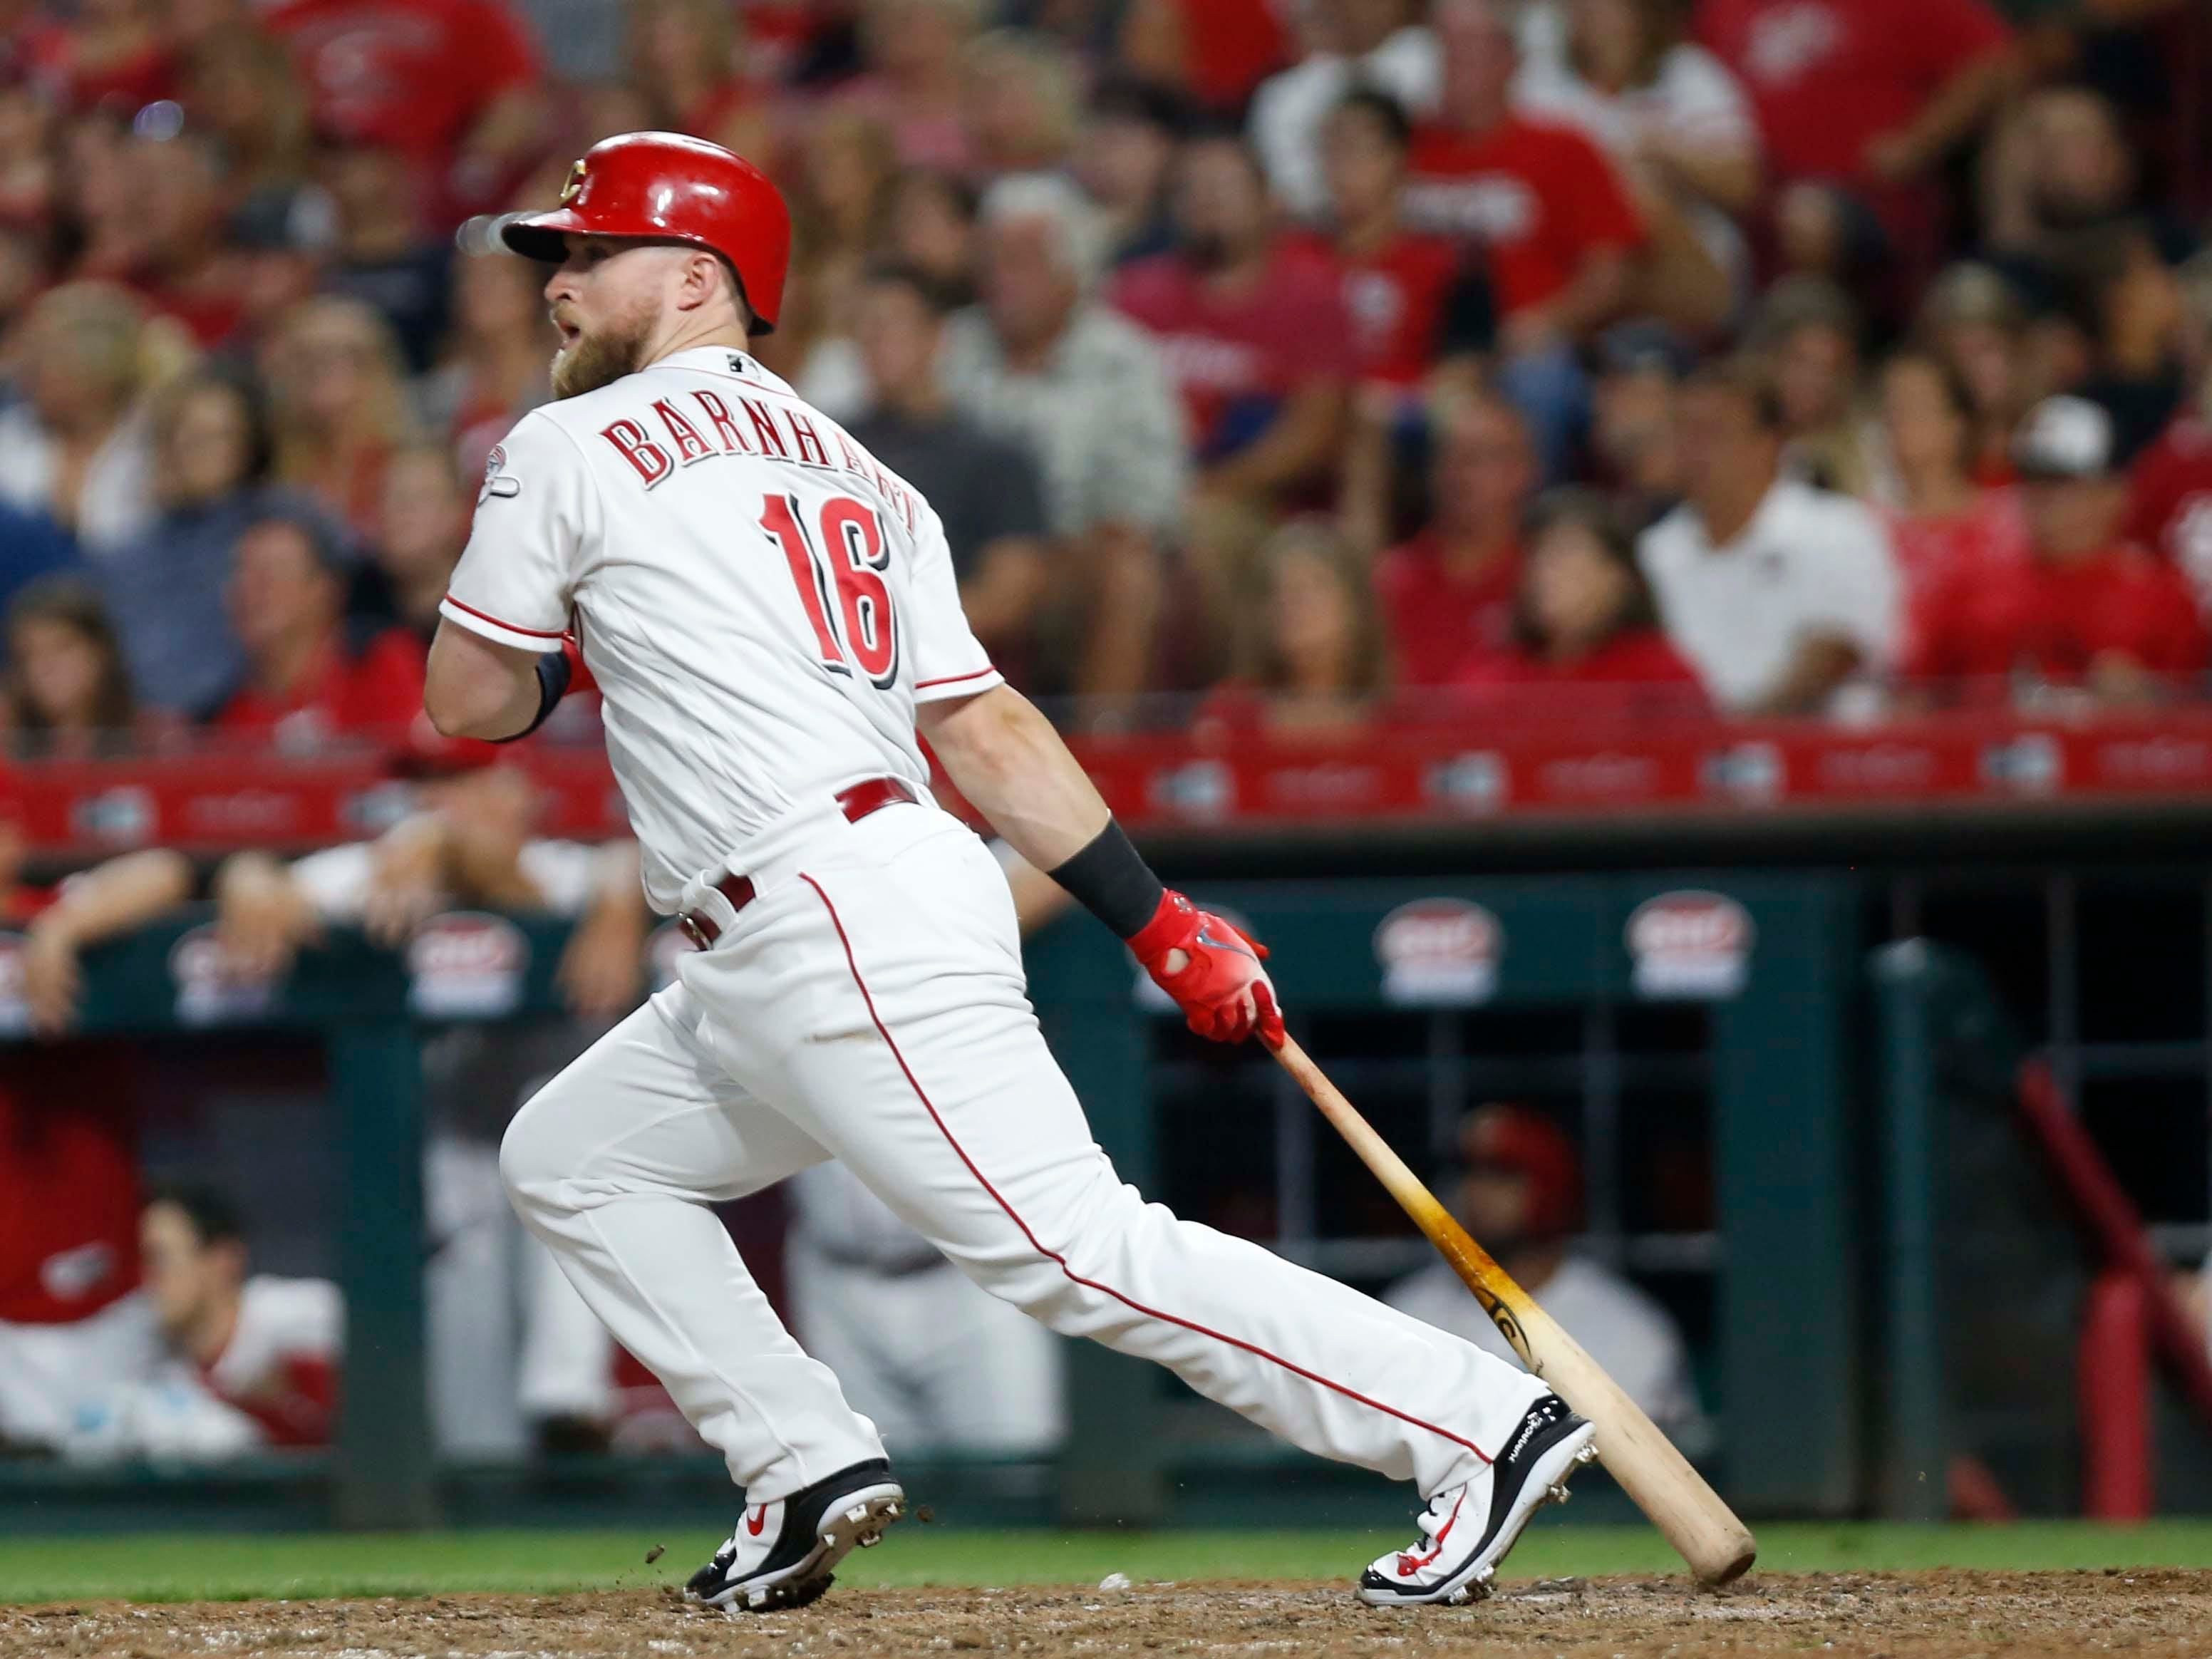 Aug 11, 2018; Cincinnati, OH, USA; Cincinnati Reds pinch hitter Tucker Barnhart (16) hits a two-run double against the Arizona Diamondbacks during the eighth inning at Great American Ball Park. Mandatory Credit: David Kohl-USA TODAY Sports